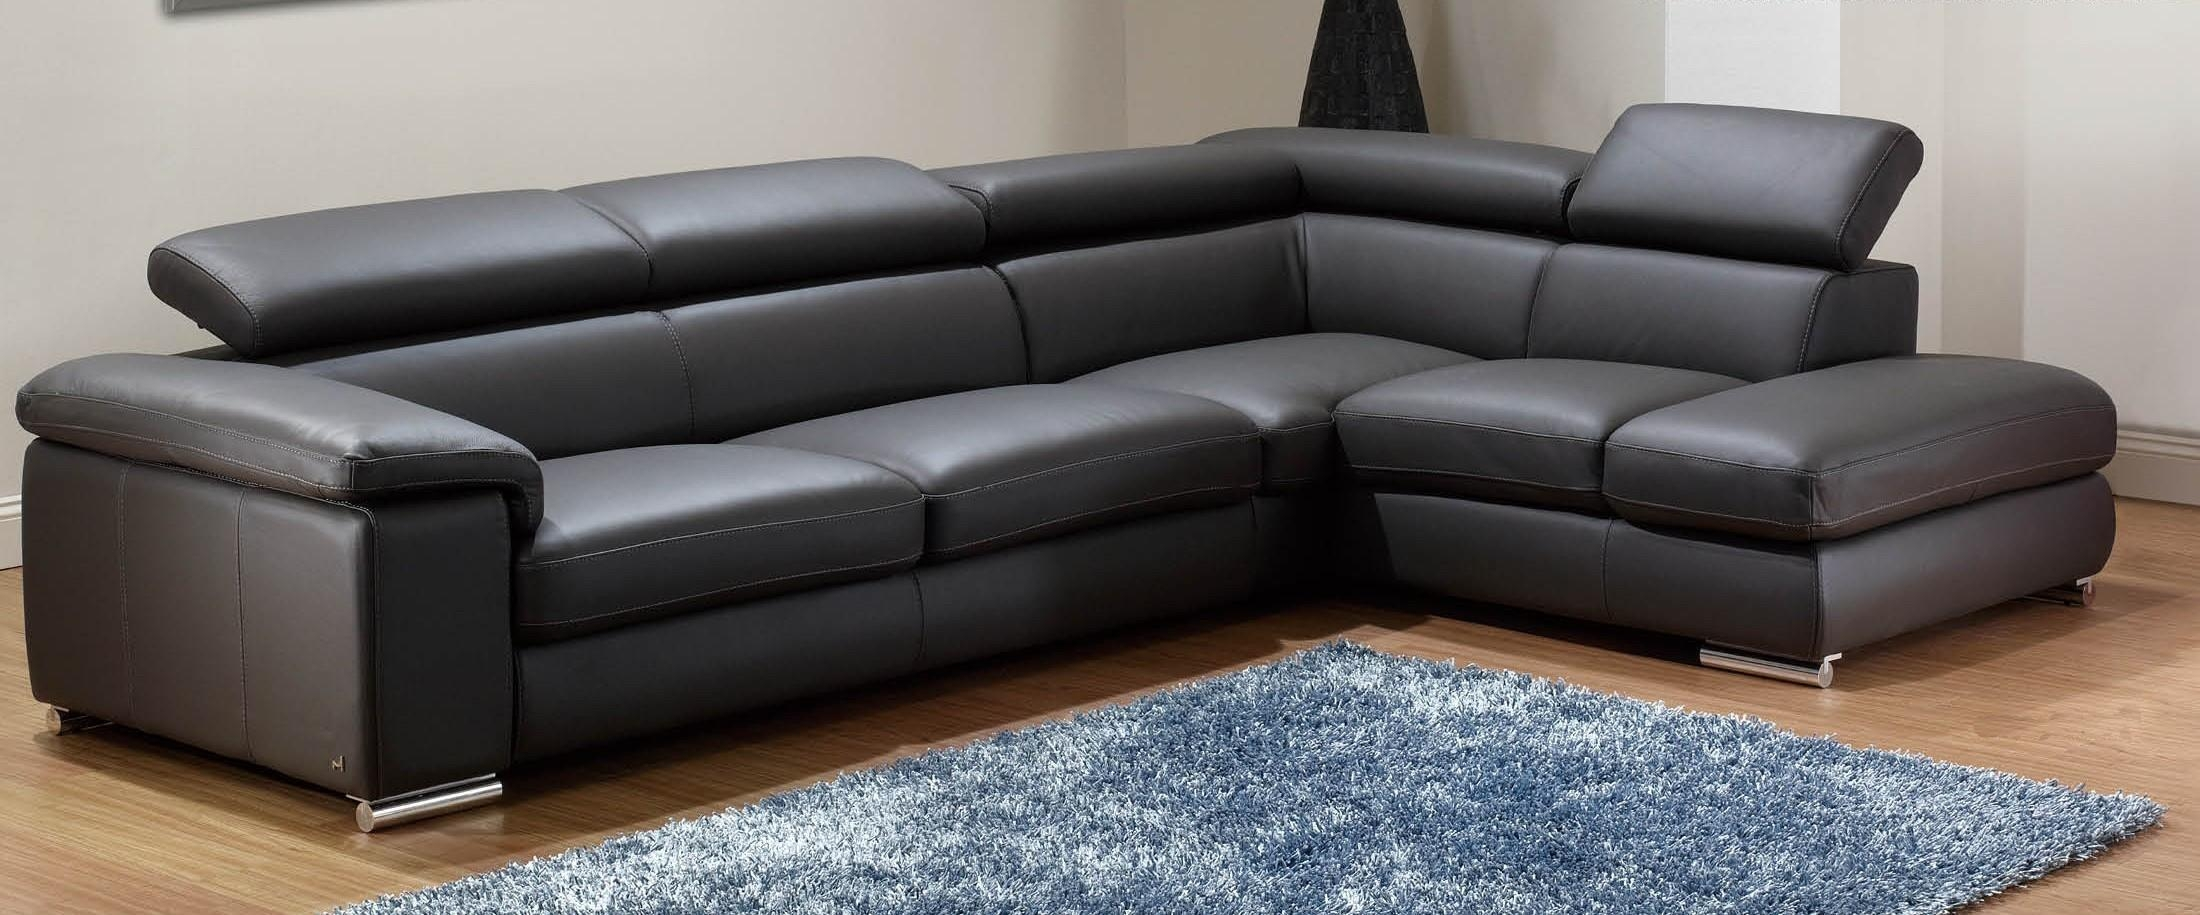 Sectional Sofa Design : Sectional Sofas Near Me Short Silver Feet With Short Sofas (View 3 of 20)